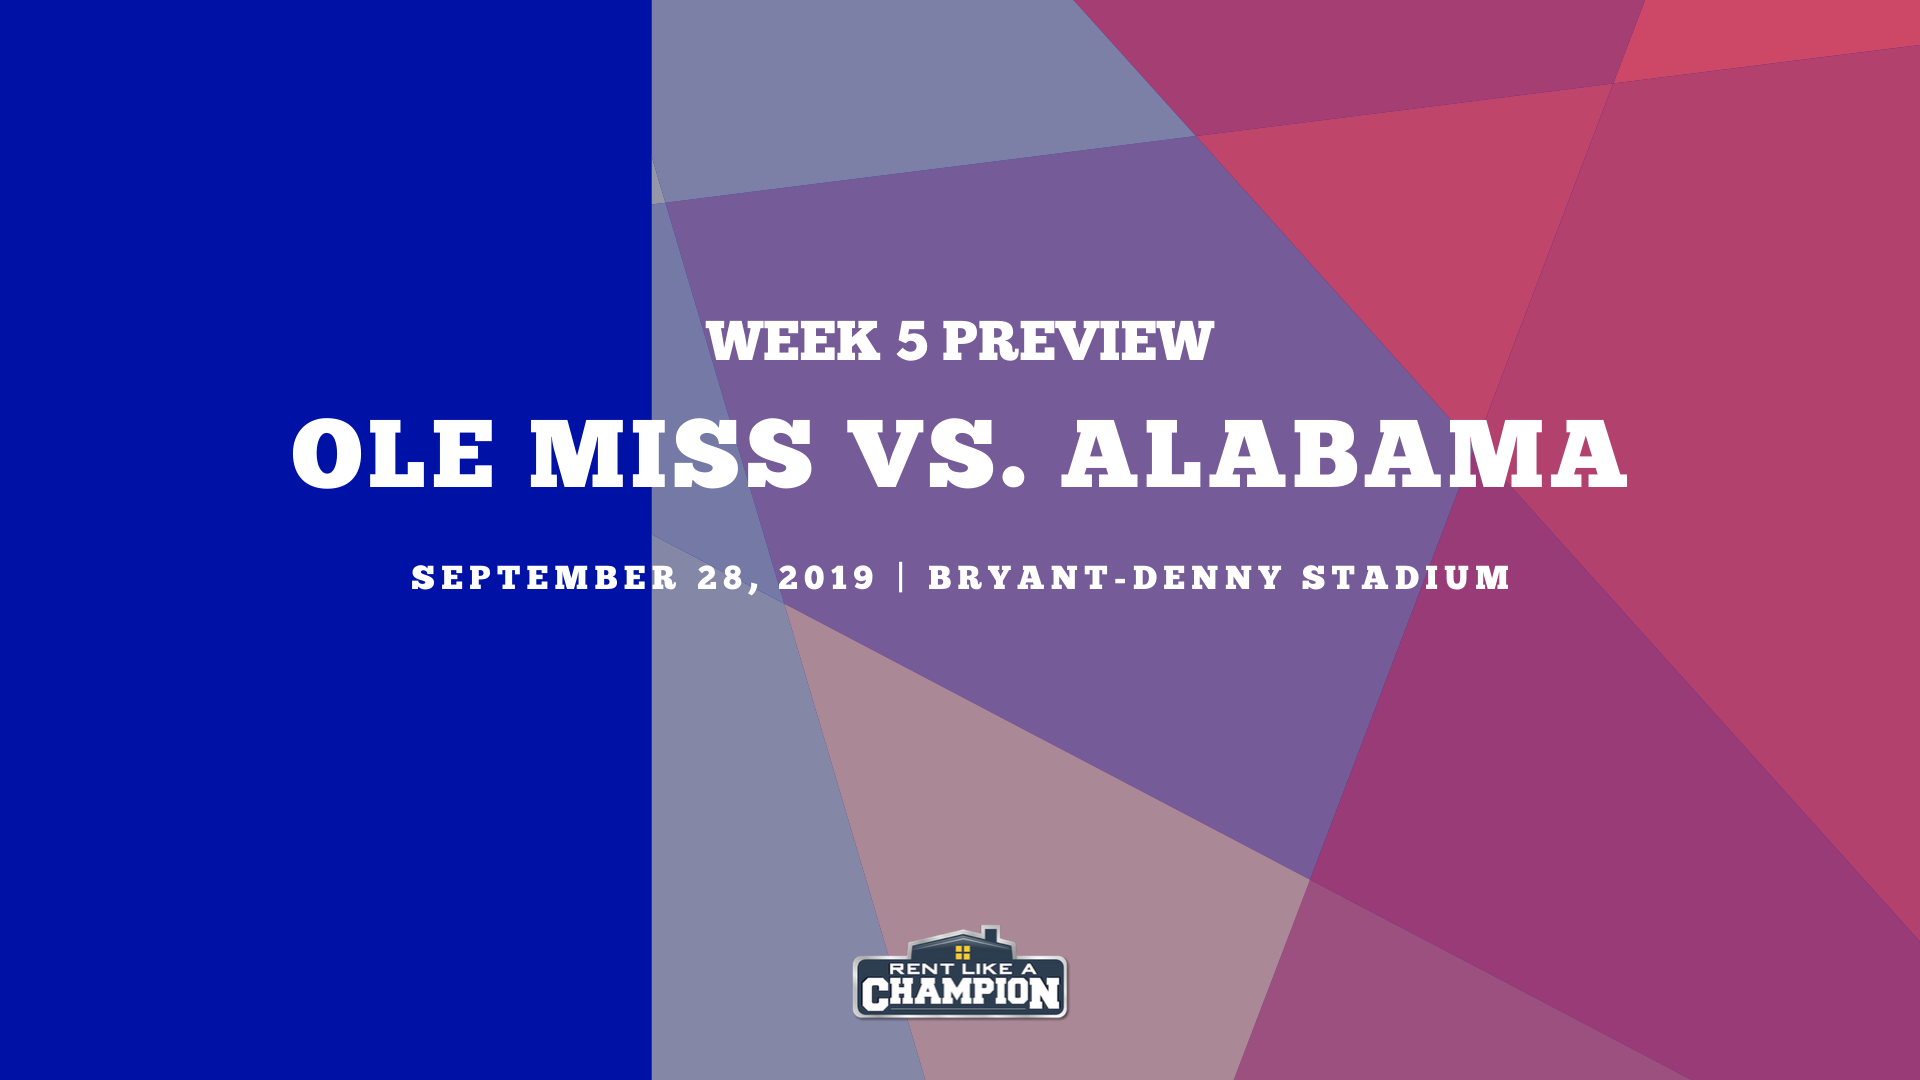 Ole Miss Game Preview Template (6)